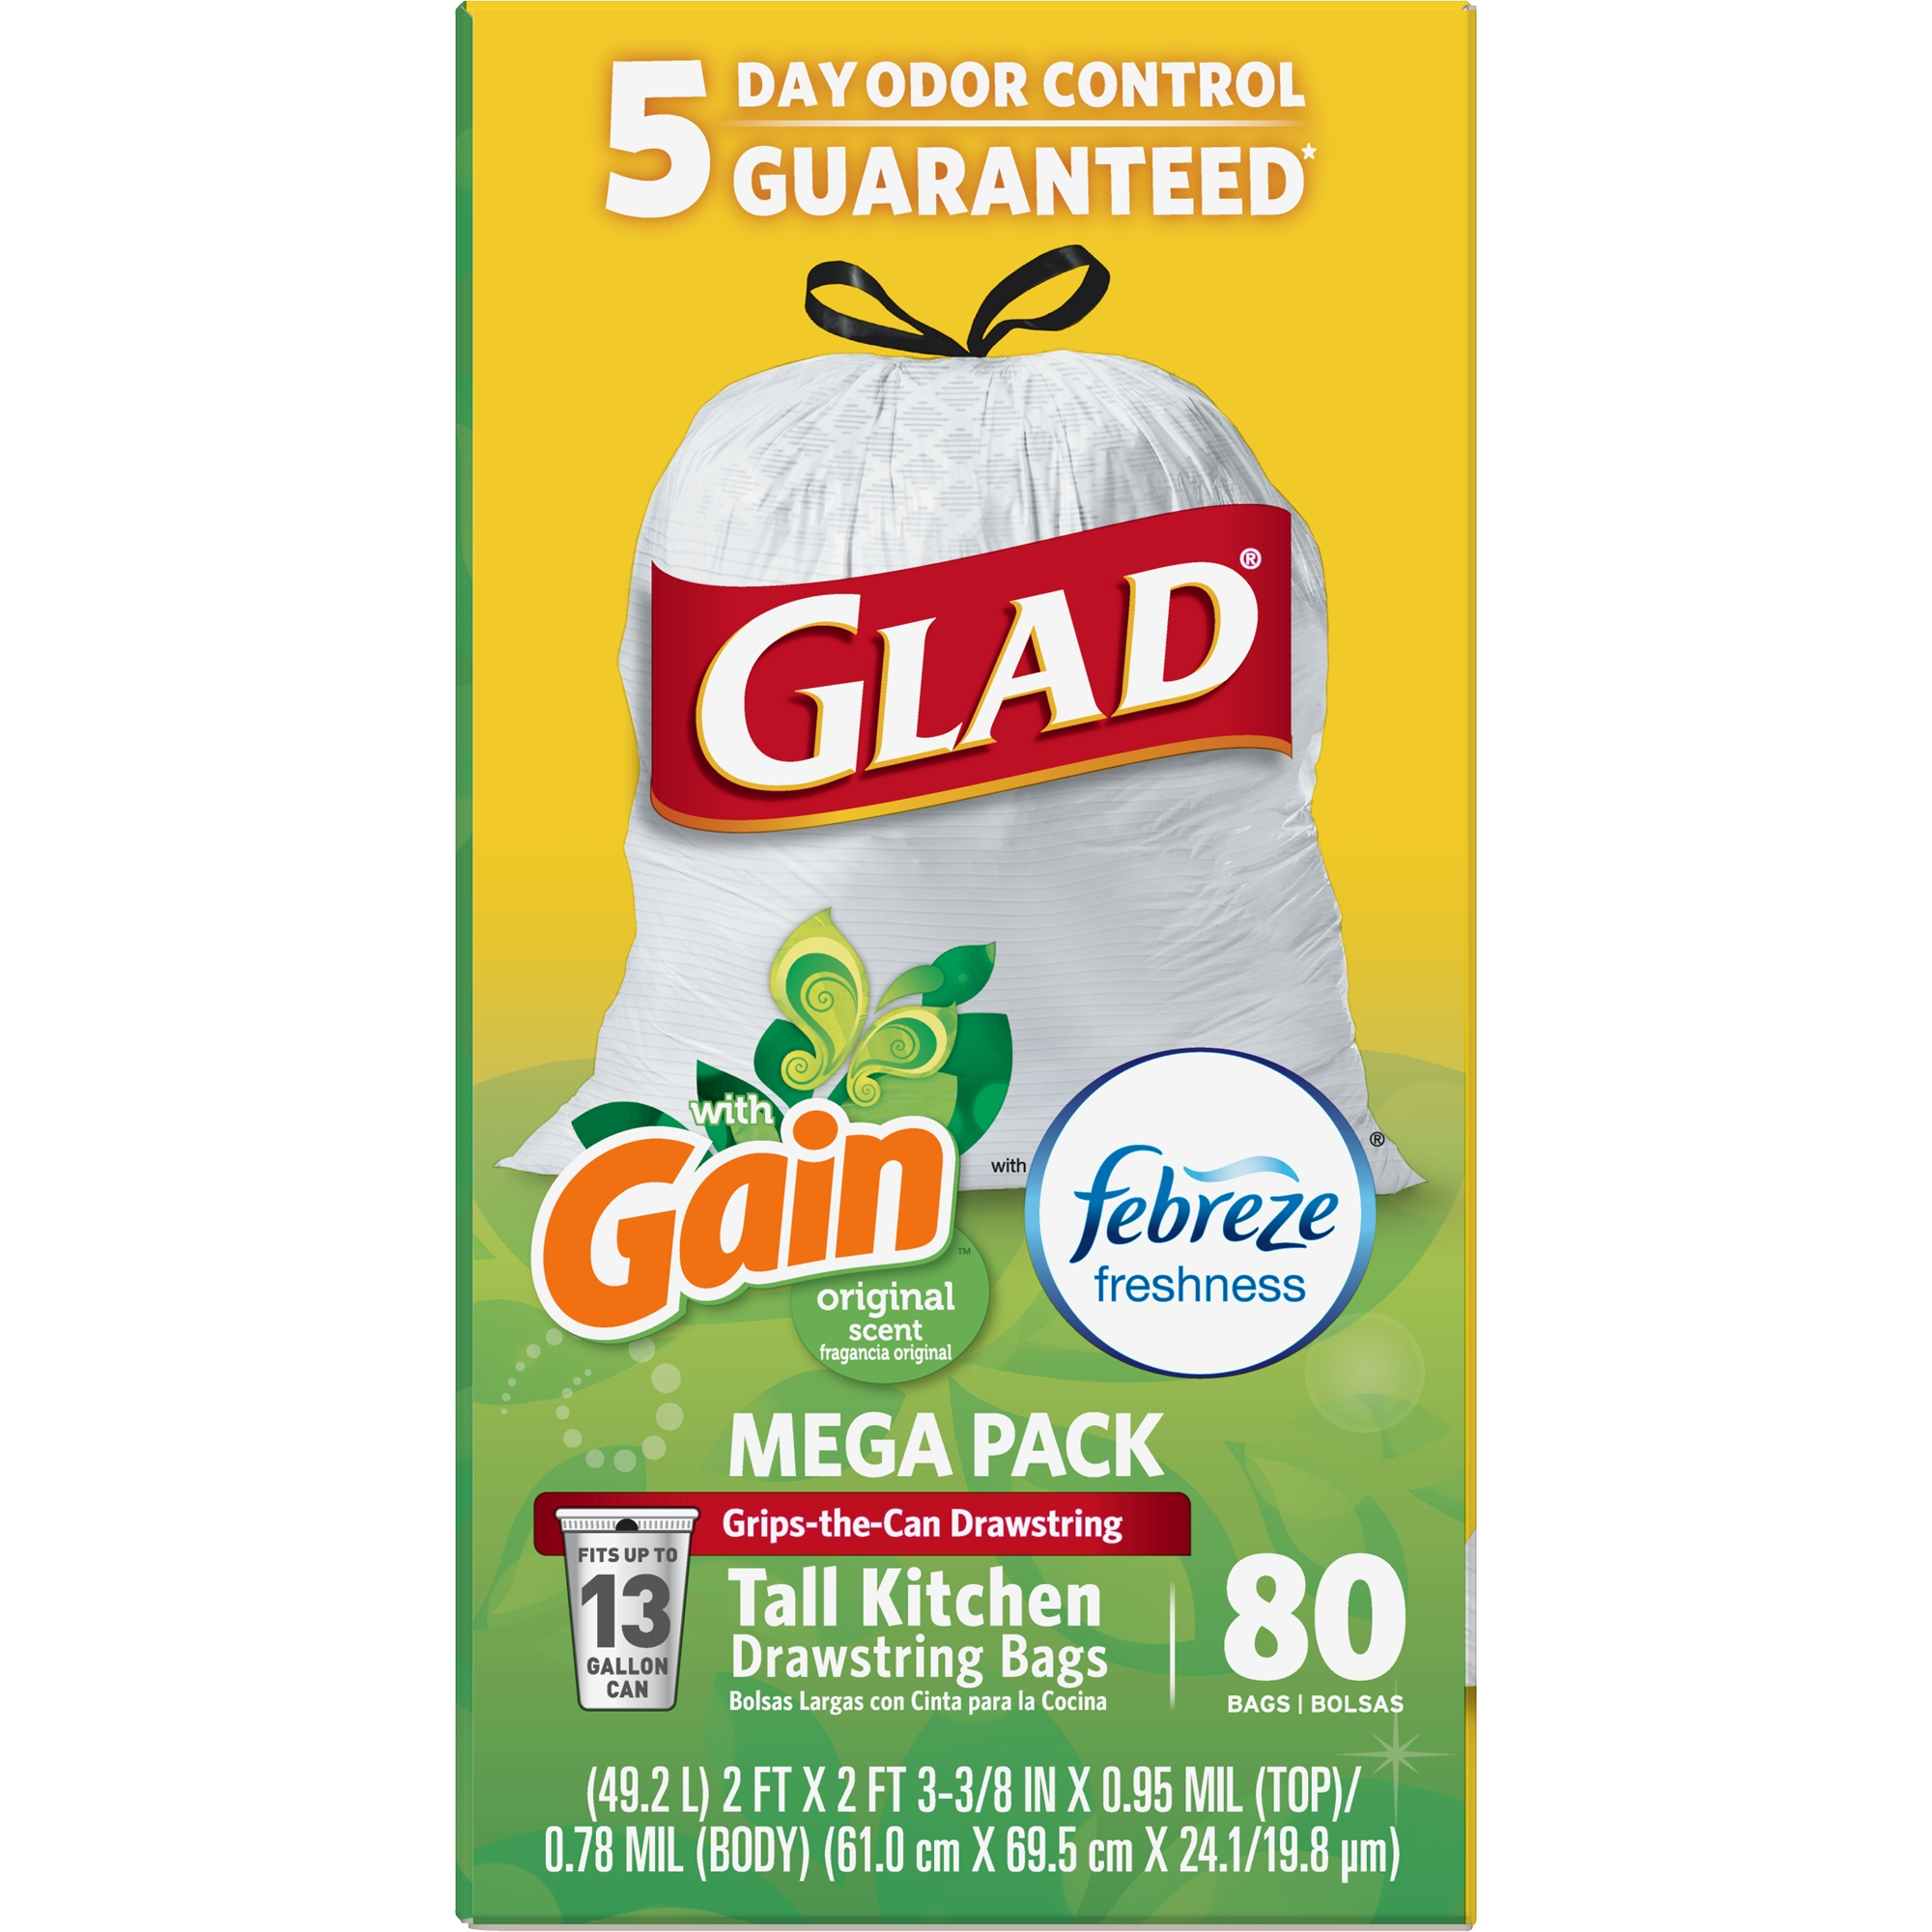 Glad OdorShield Tall Kitchen Drawstring Trash Bags - Gain Original with Febreze Freshness - 13 gal - 80 ct